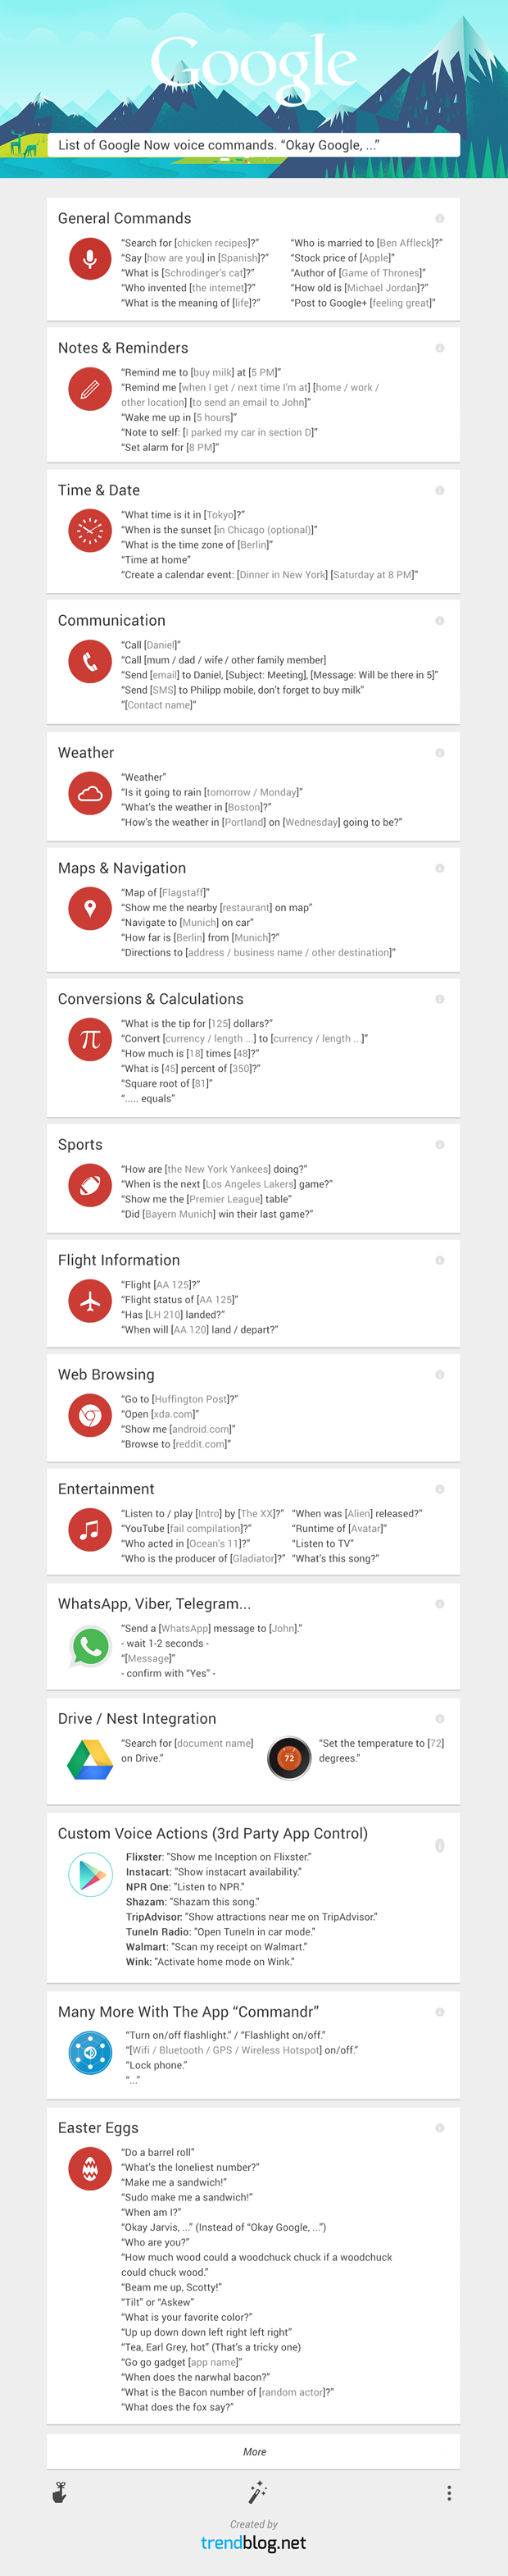 list-google-now-commads-infographic-V5